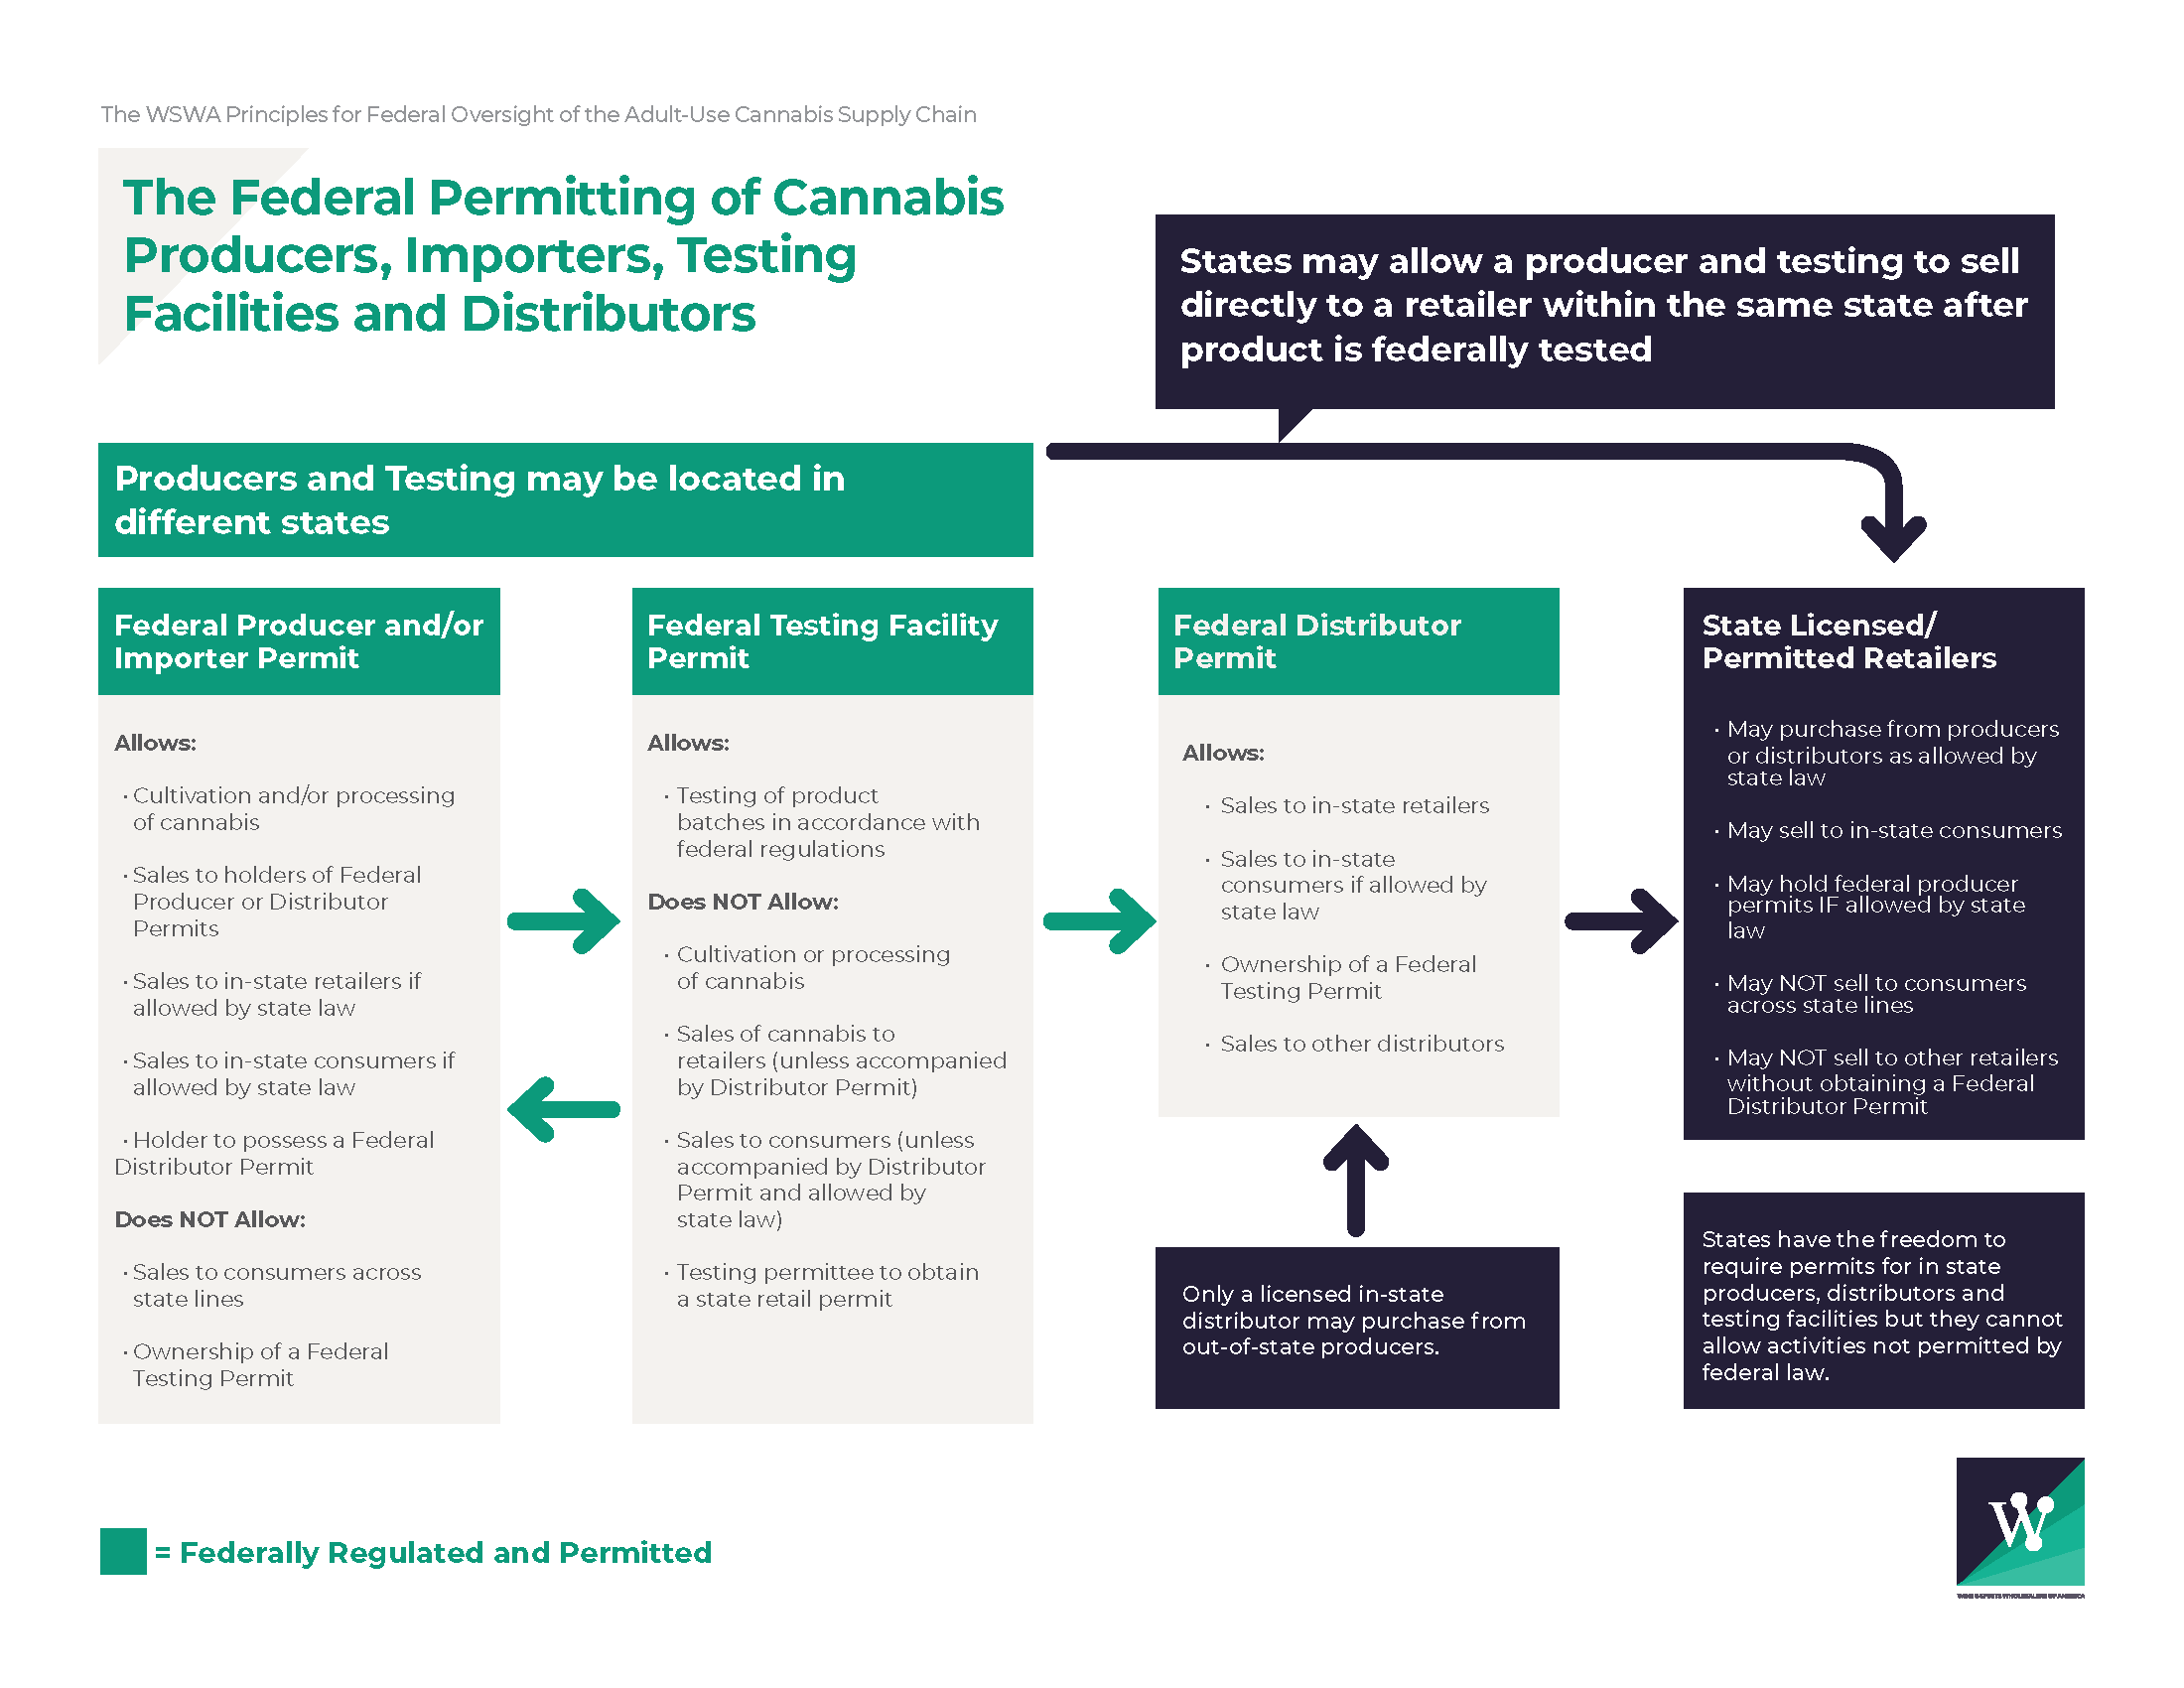 Principles of Permitting Adult-Use Cannabis Federally